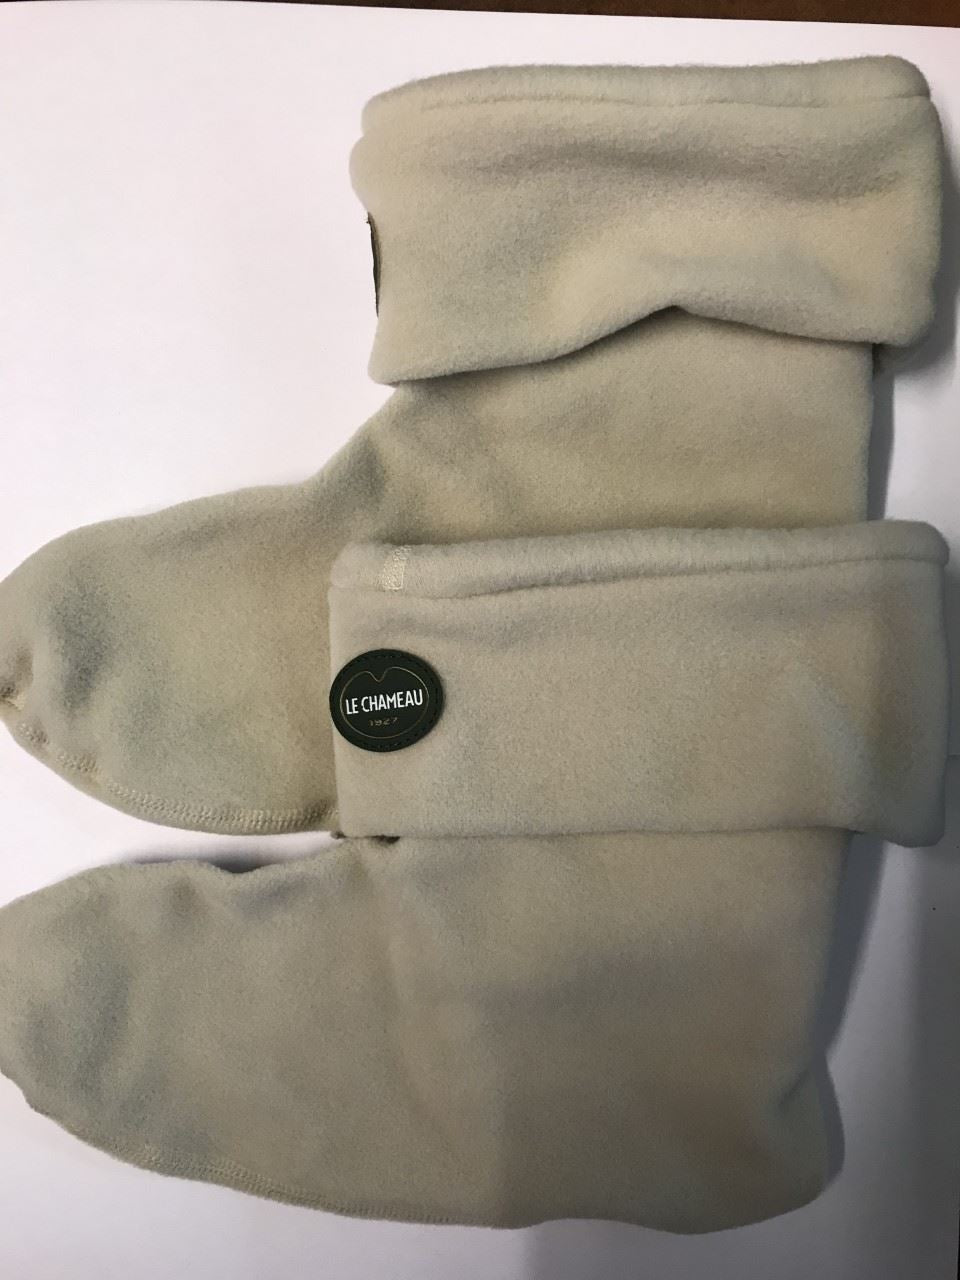 Le Chameau PolarFleece Socks - Low Boot - Beige Sable